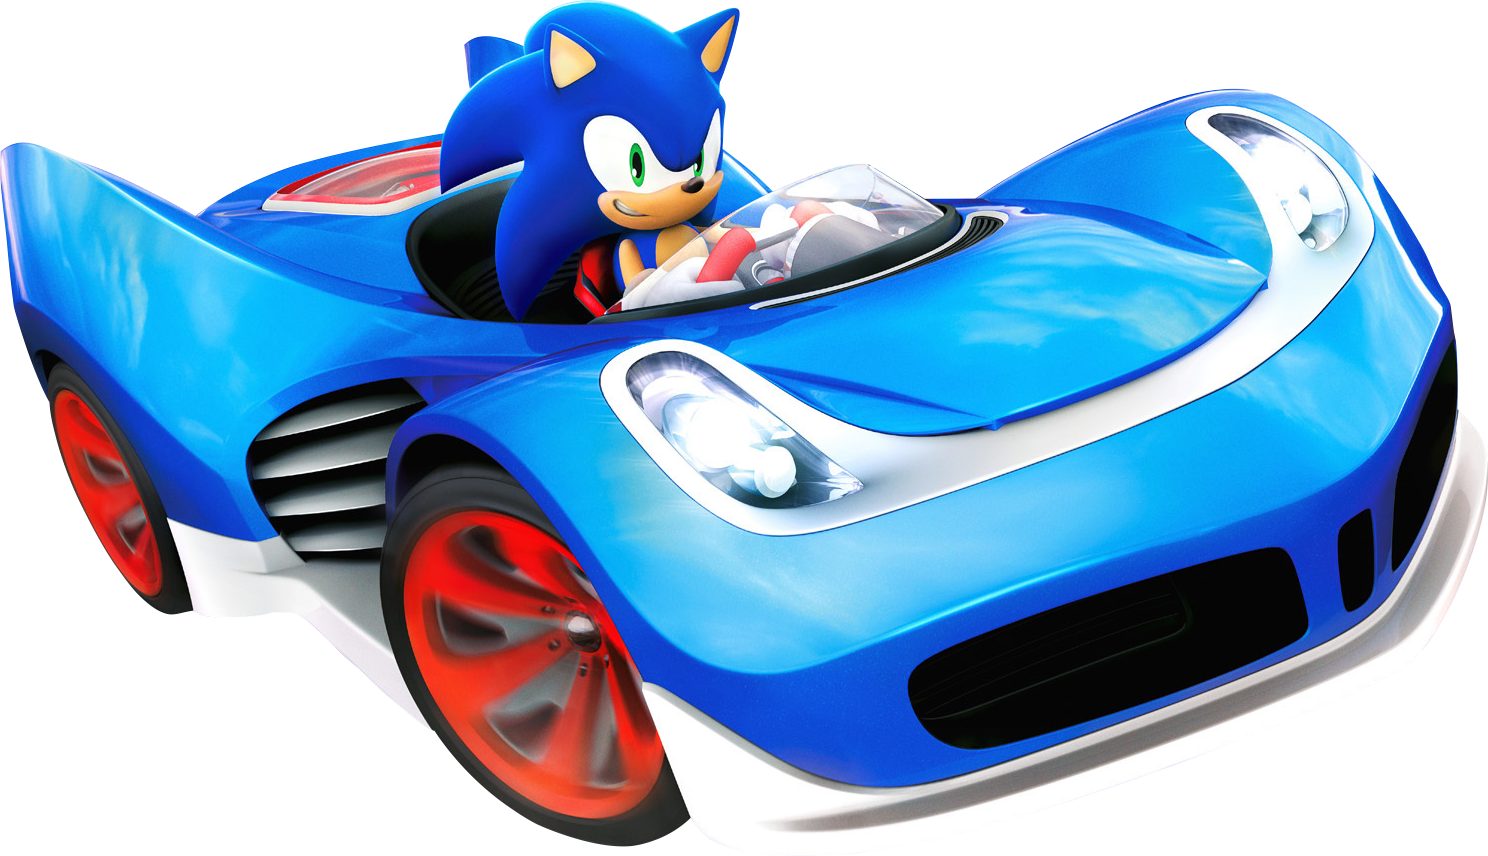 File:Sonic asrt unstreched.png